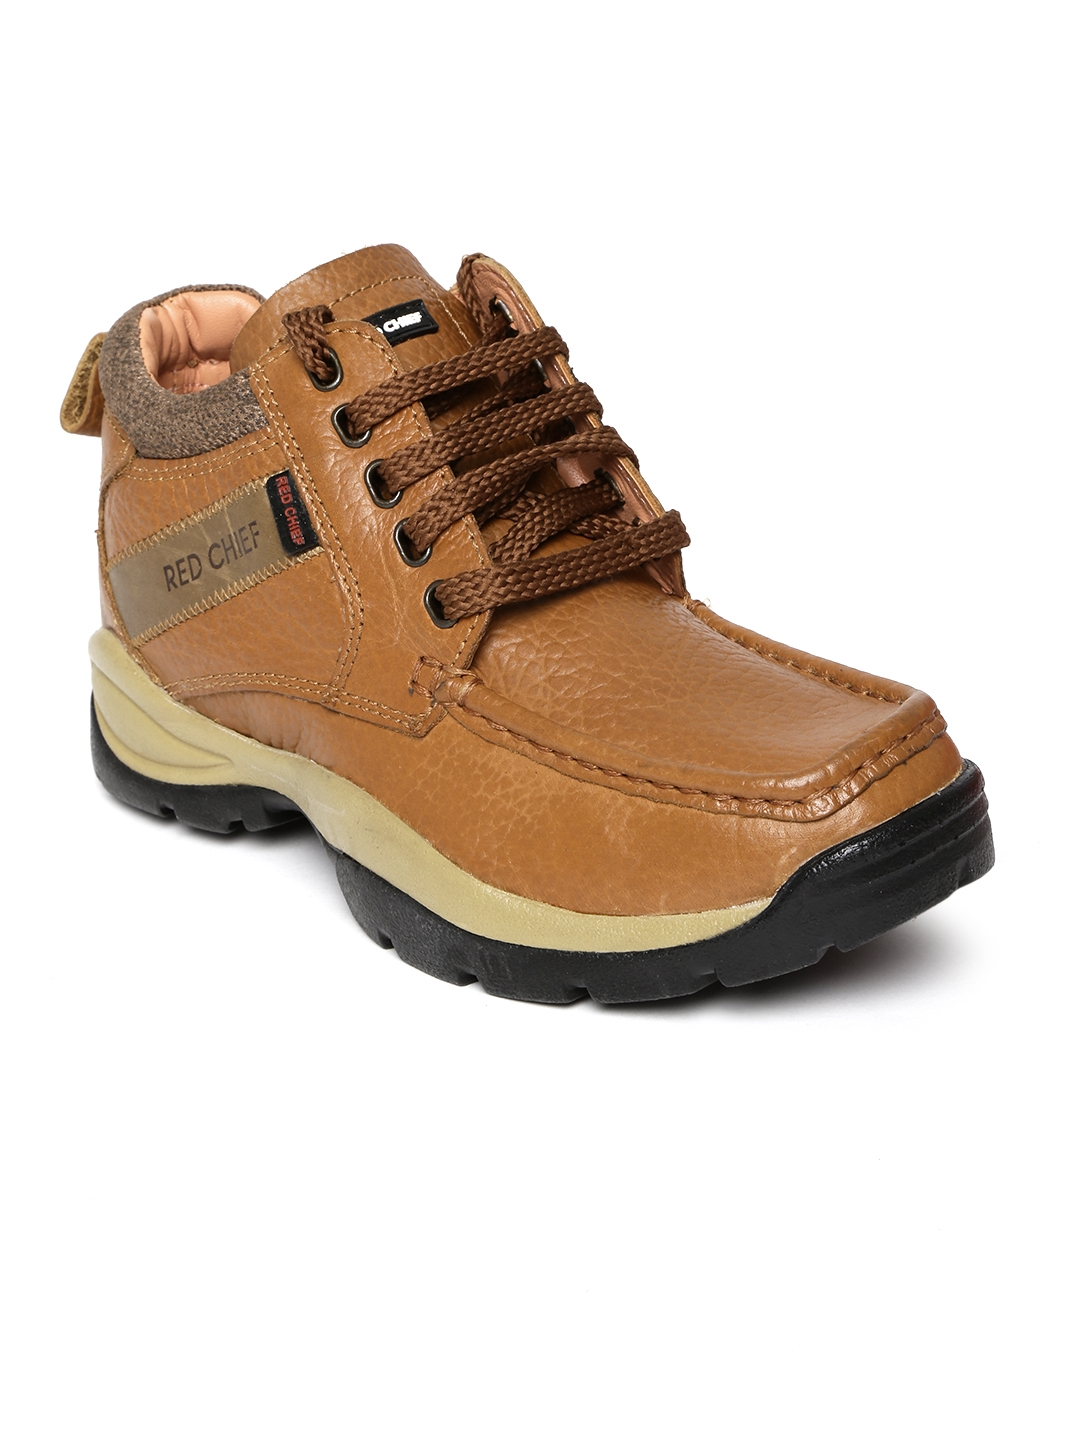 Buy Red Chief Men Tan Brown Leather